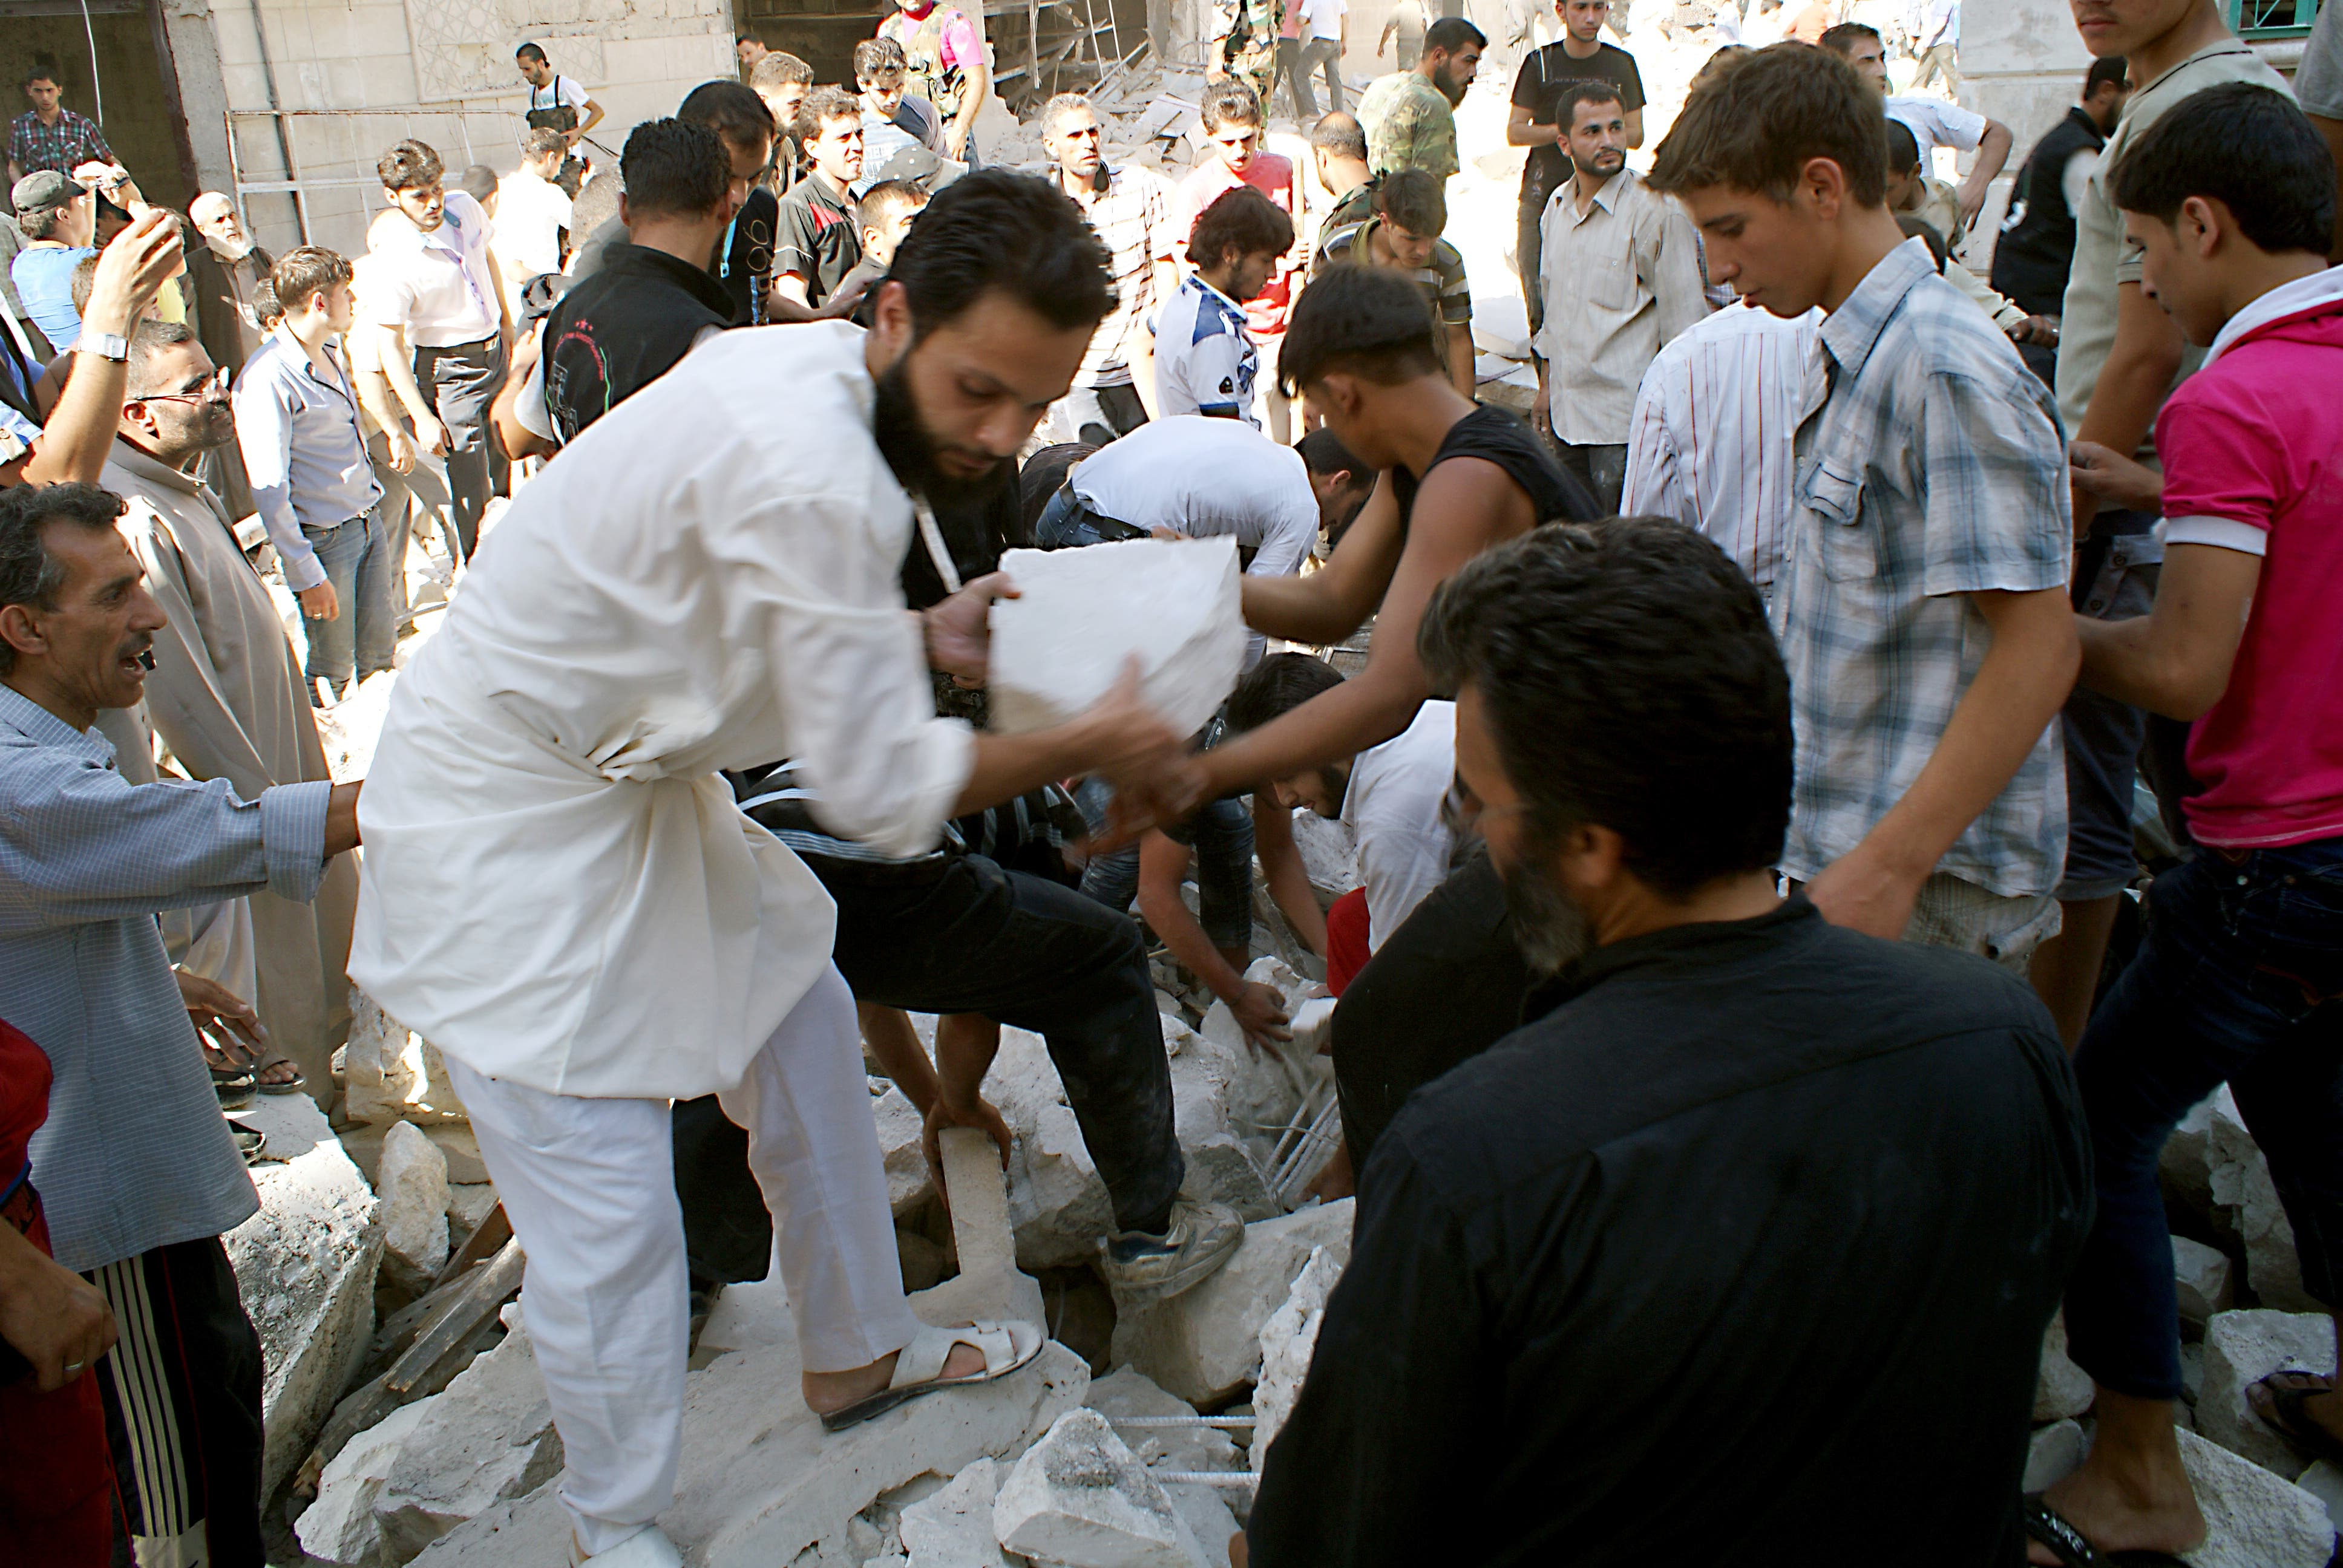 Rescuers and neighboors removes chunks of rubble from a partially collapsed building after a rocketed slammed into the side of a residential block located next to a mosque in the northern city of Aleppo on June 29, 2013. (Source: AFP/JALAL-ALHALABI)